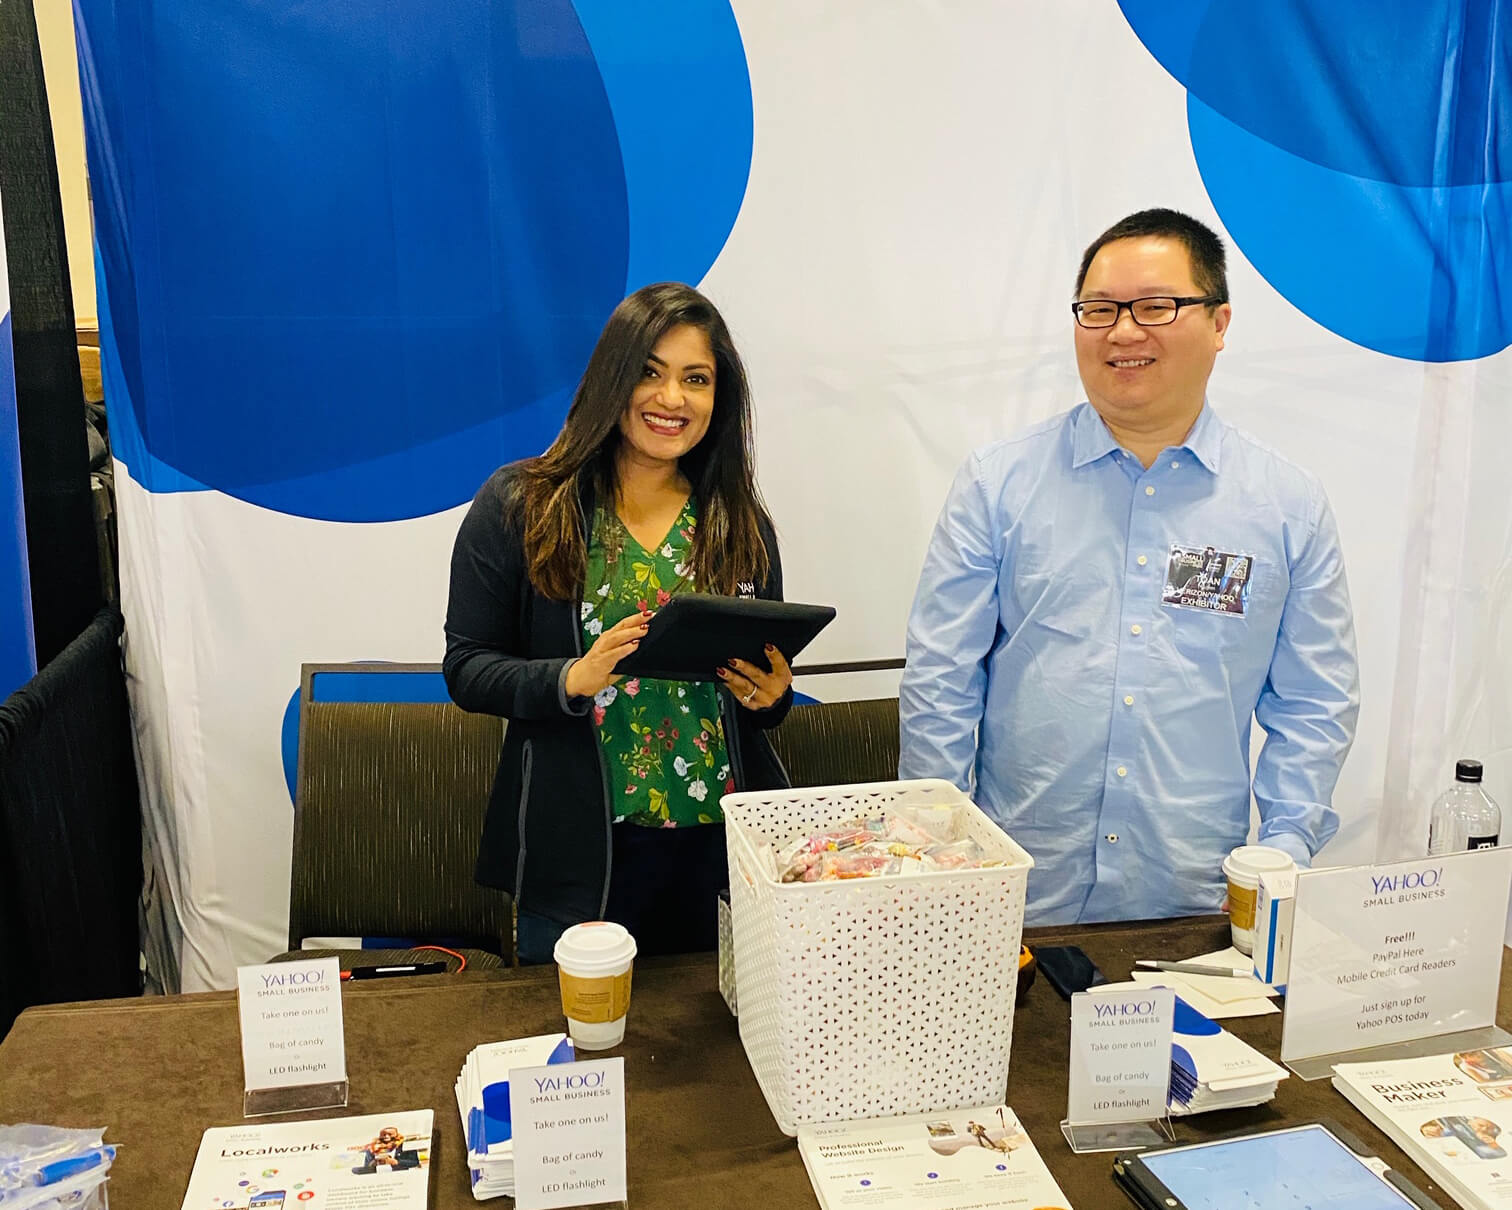 Yahoo Small Business attends Small Business Expo, Los Angeles